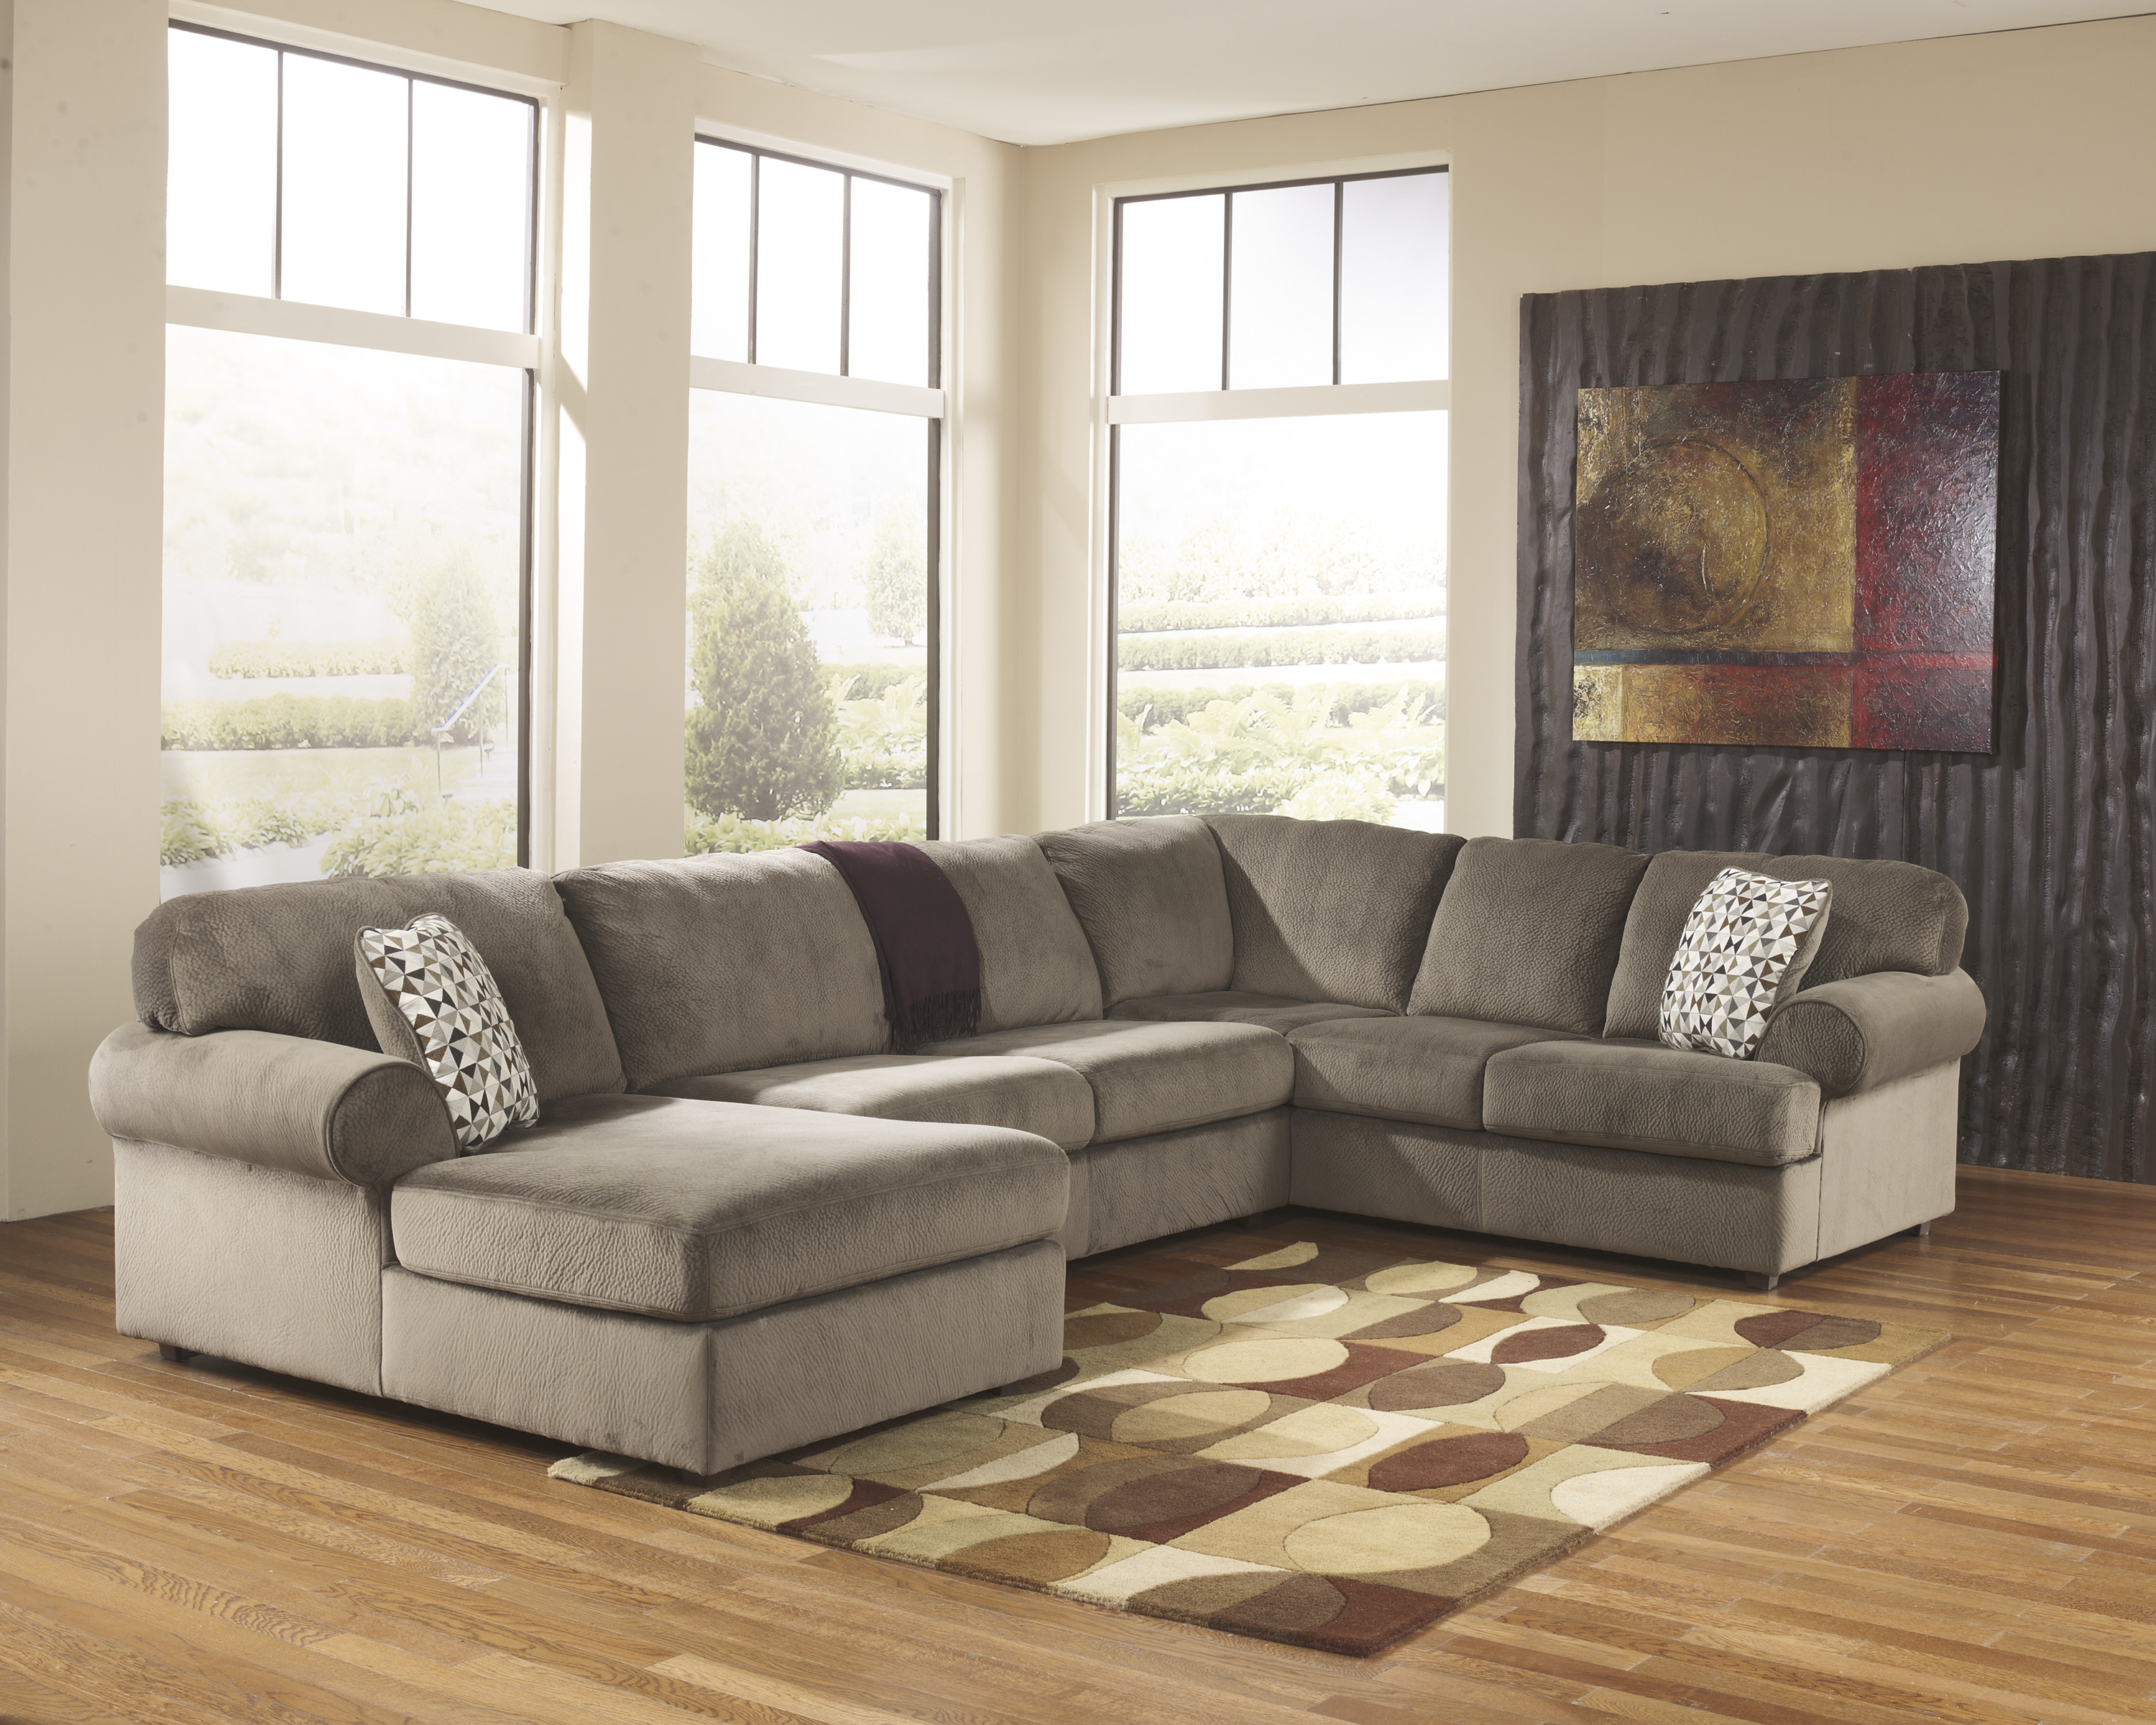 Jessa Place Dune Sectional With Left Chaise  / $29.99 A Week